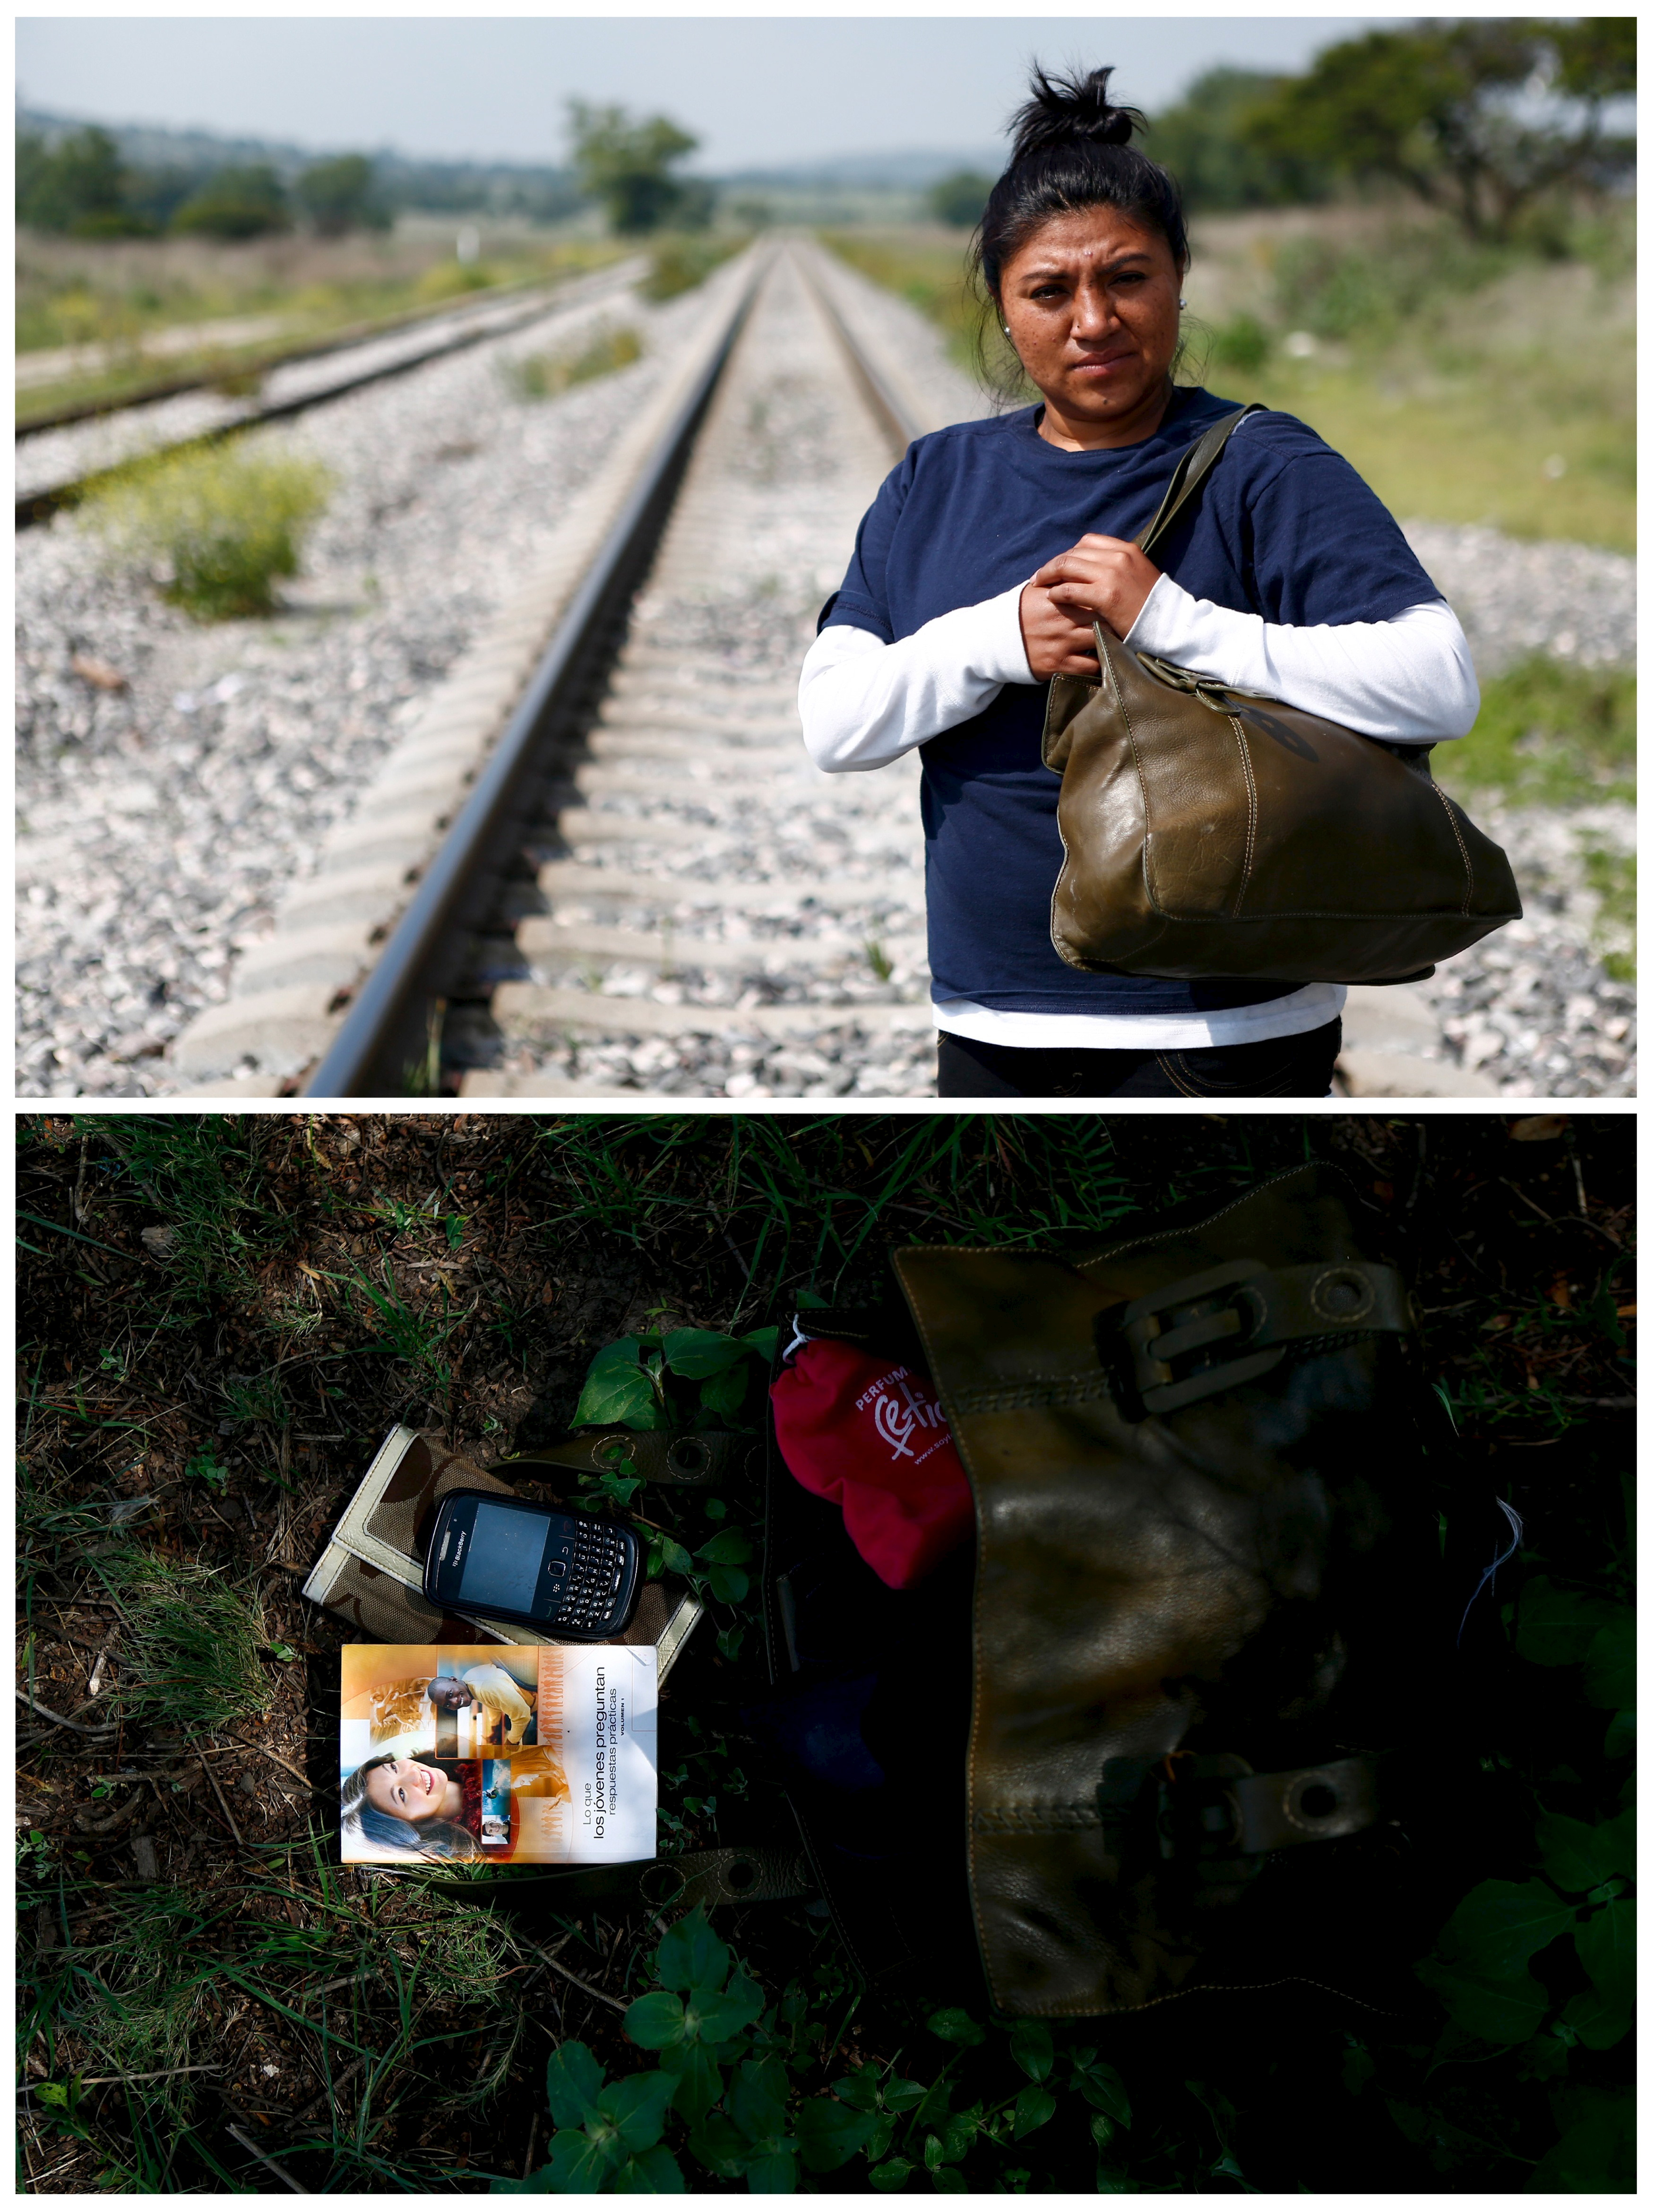 Guatemalan immigrant Jennifer Mendez, 27, tries to board a train heading to the U.S.-Mexico border in Huehuetoca, Mexico with her possessions: a book, a cell phone and a wallet, on June 2, 2015. Mendez, was a surgeon in Guatemala, but left with the dream of studying in the United States. Photo by Edgard Garrido/Reuters